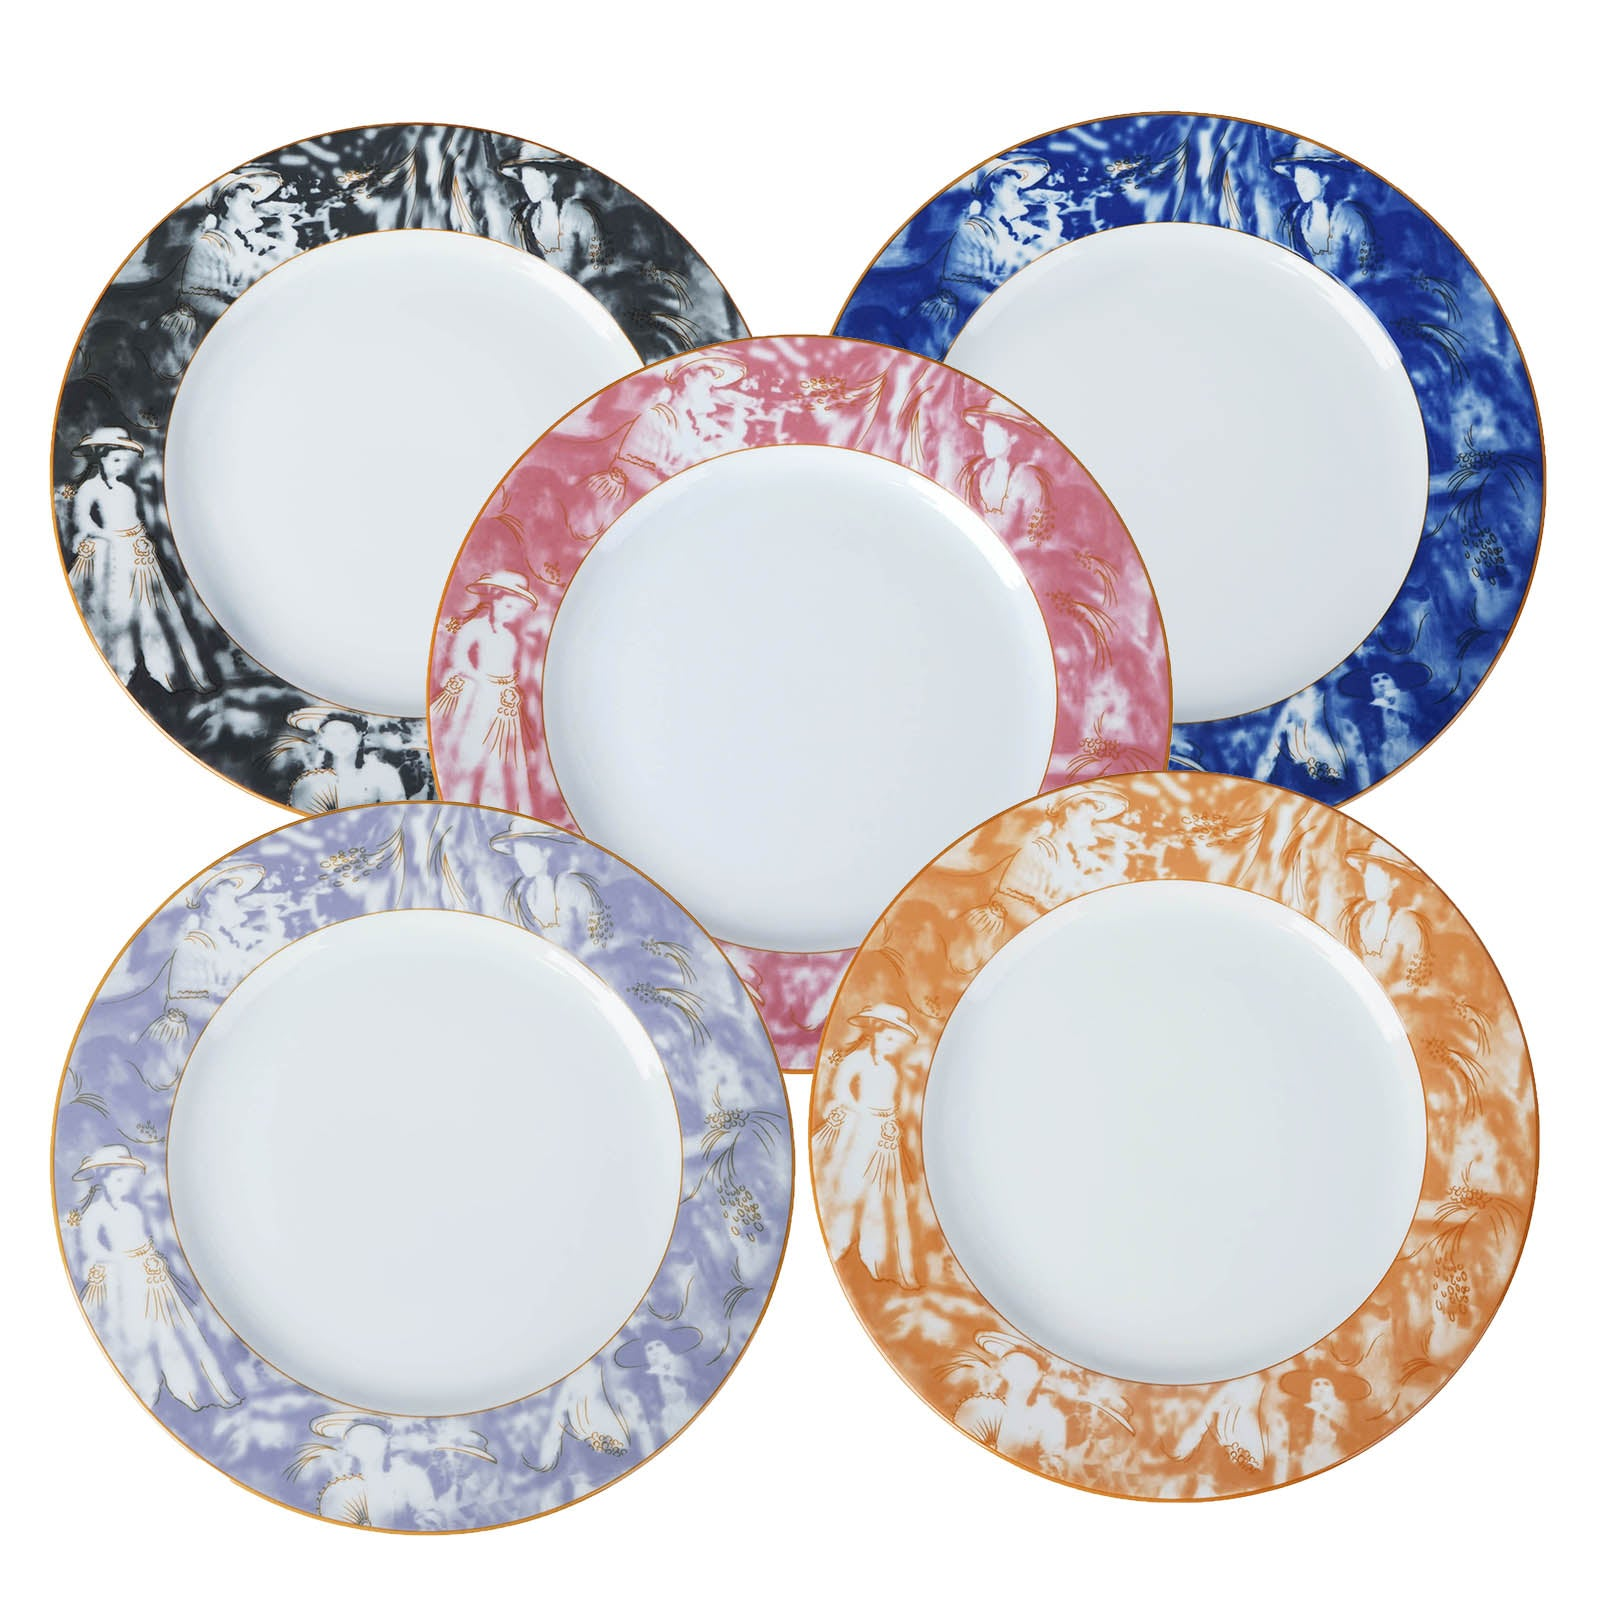 Dishwasher Safe 11.5  Porcelain Chip Resistant Dinner Plate - Black - Set of 12  sc 1 st  eFavormart.com & Dishwasher Safe 11.5